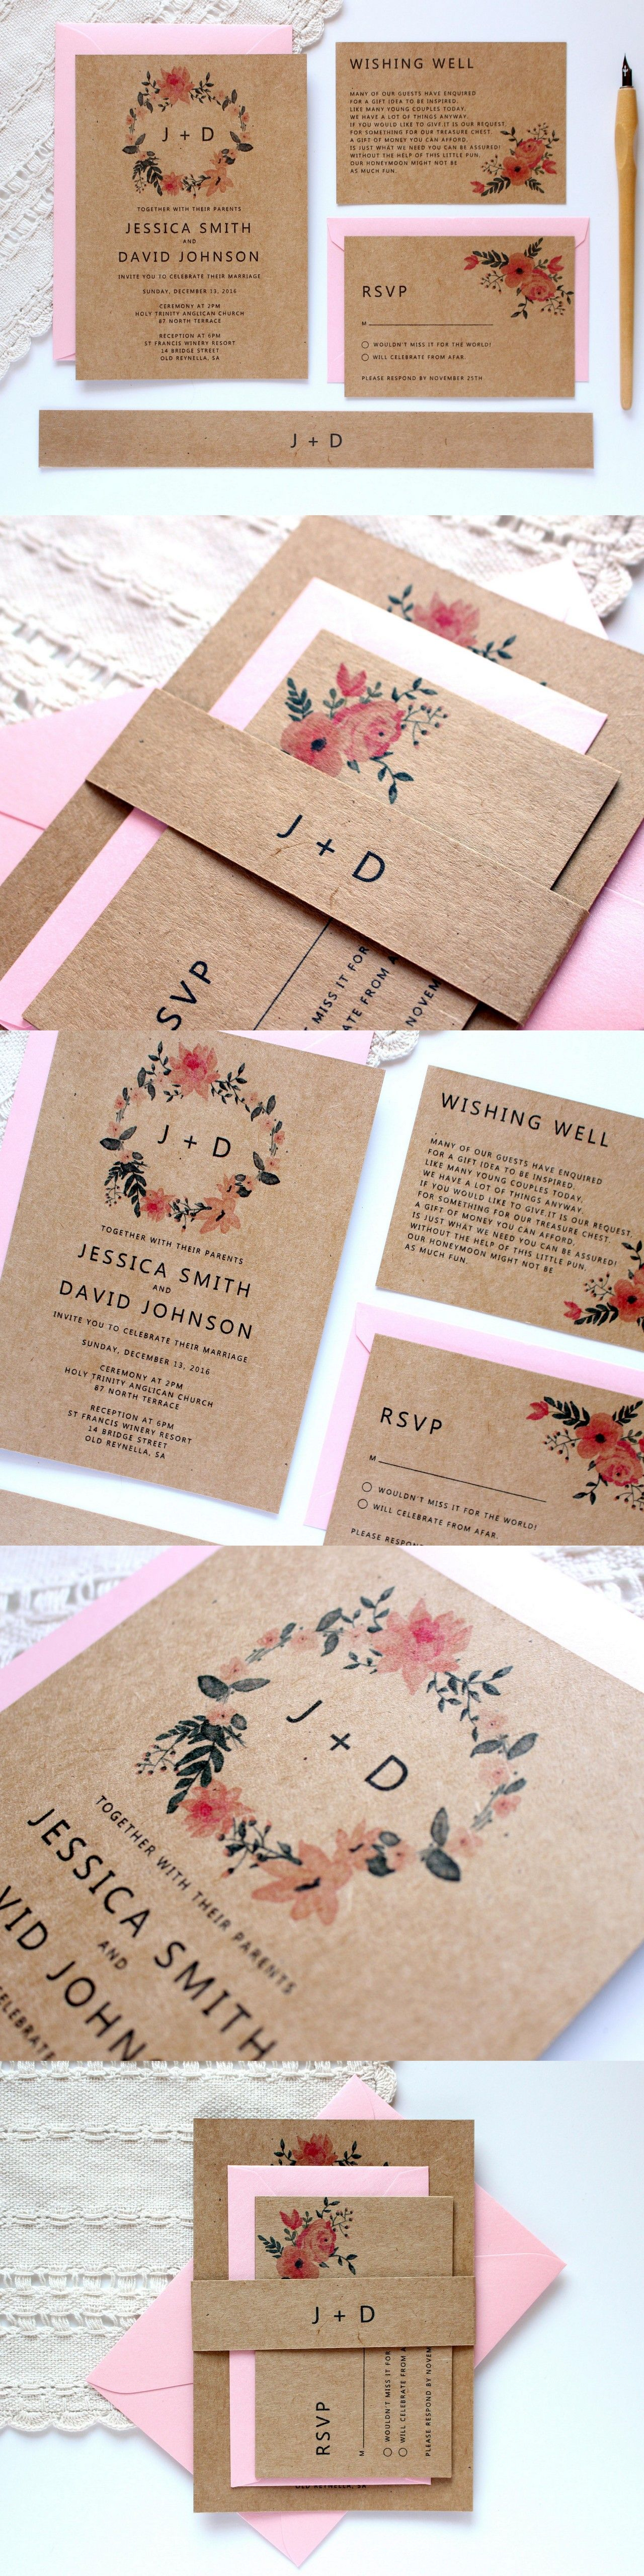 Backgrounds diy kraft paper wedding for floor mobile high resolution invitation with pink floral wreath by bound love